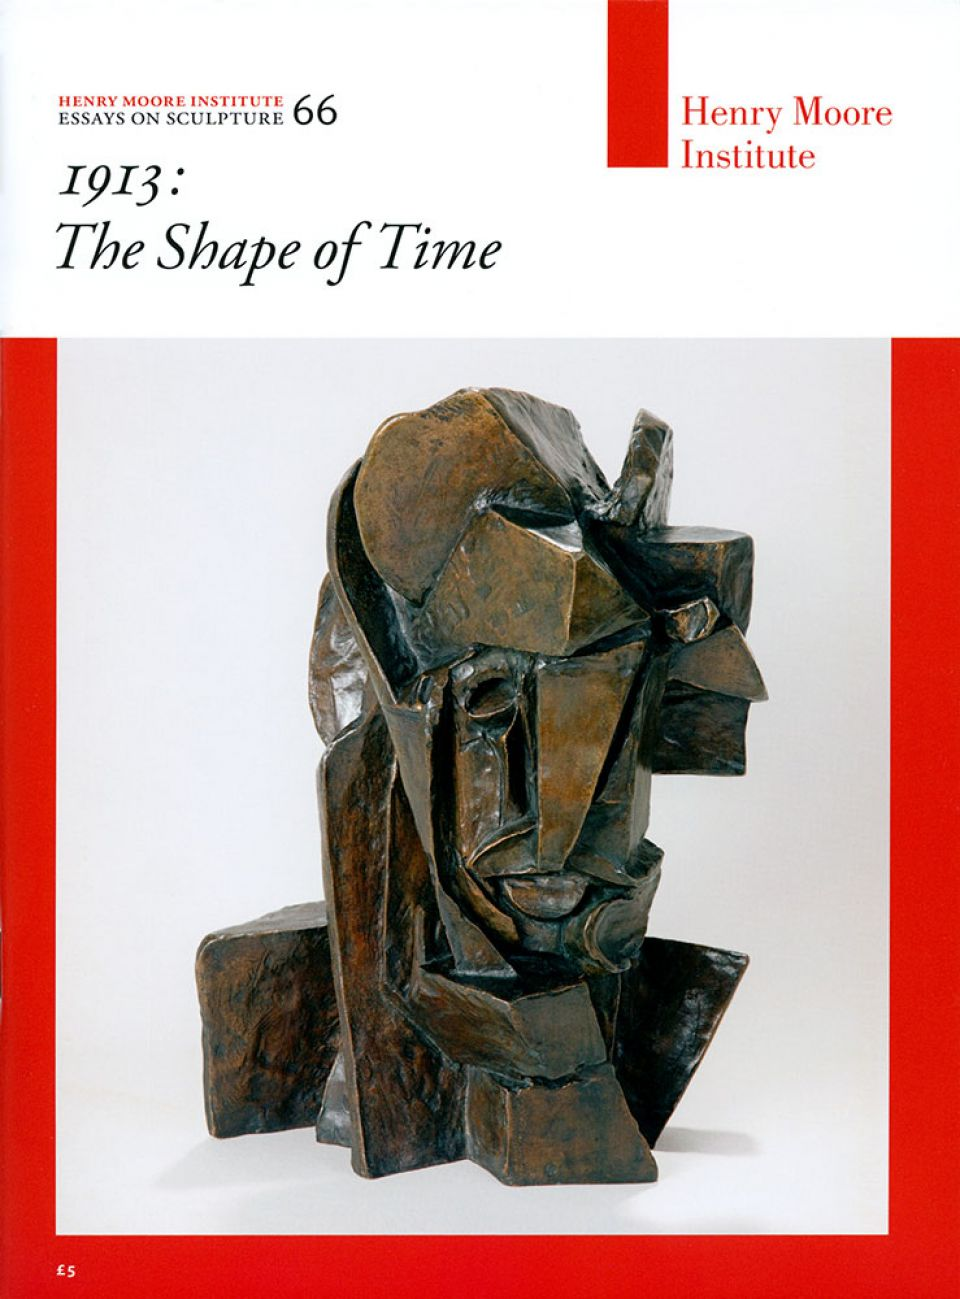 1913: The Shape of Time (No. 66)